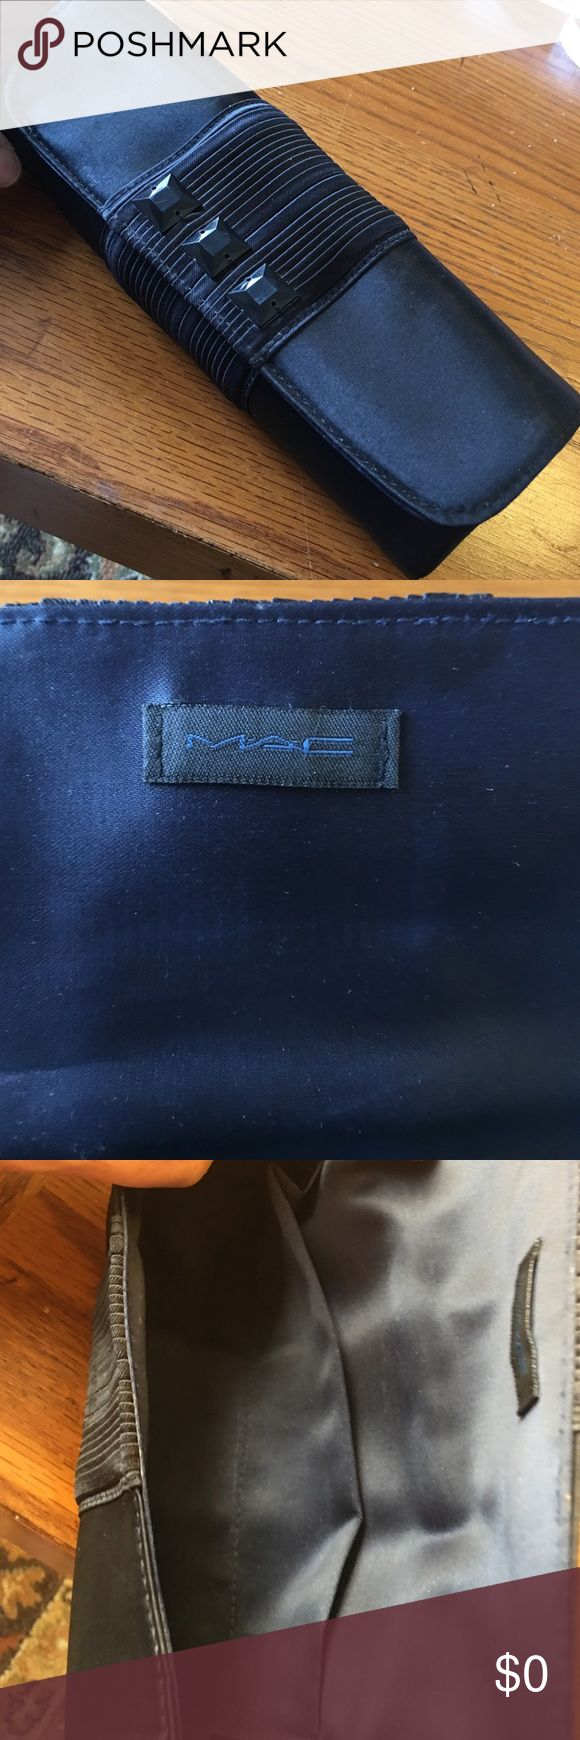 MAC  Makeup case MAC Makeup Case 8x3x2 in black.in perfect condition MAC Cosmetics Bags Cosmetic Bags & Cases